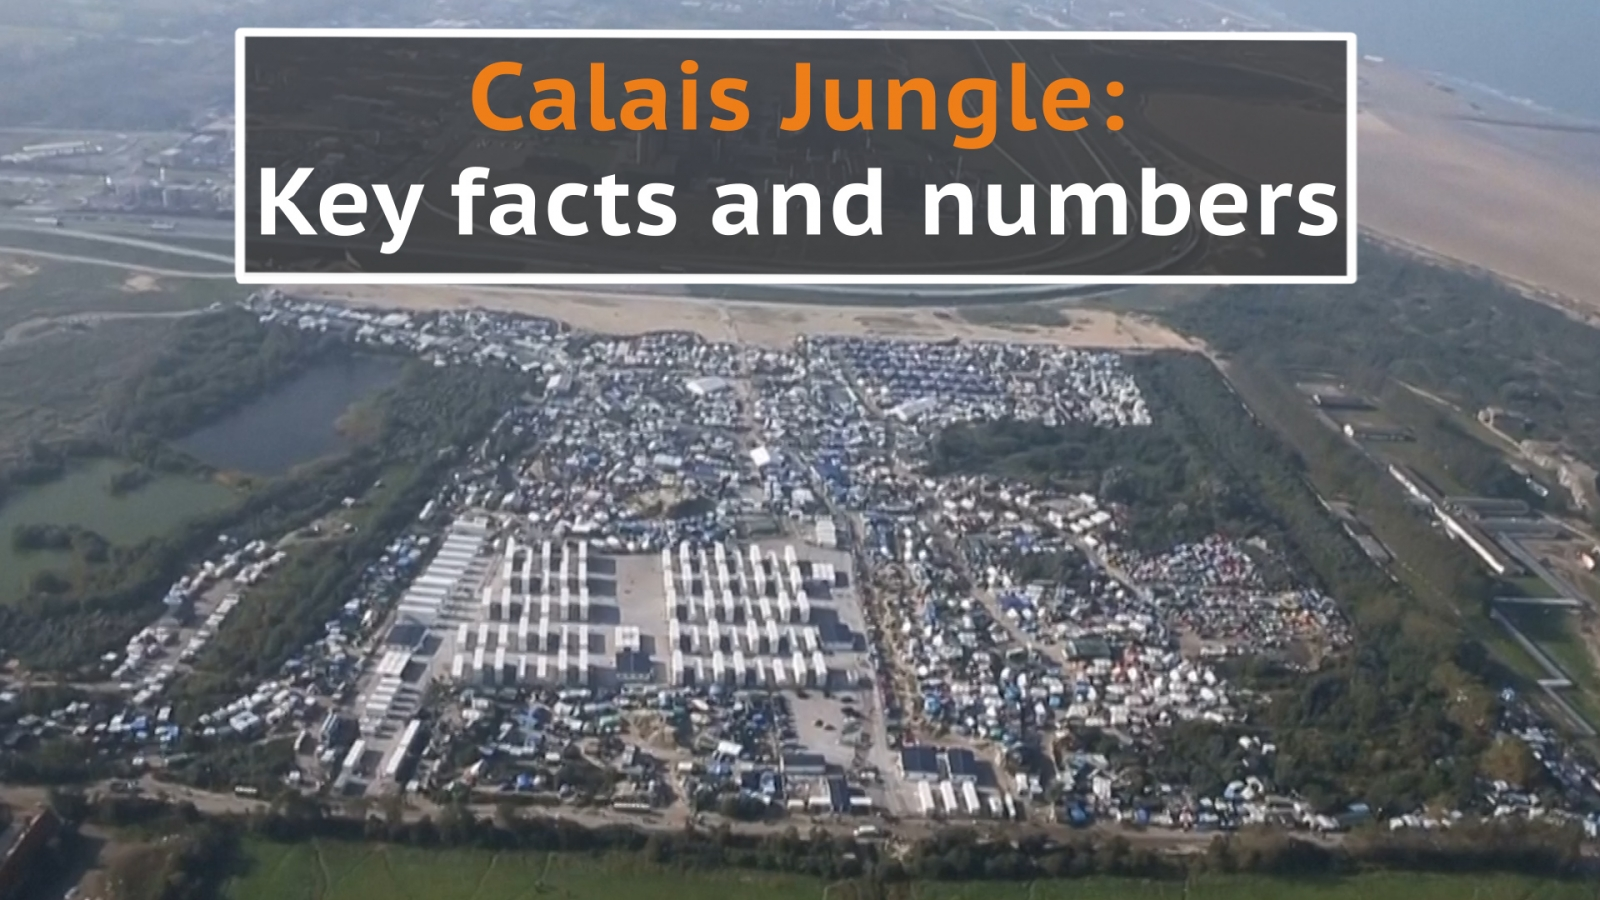 Calais Jungle: Key facts and numbers on the makeshift migrant camp